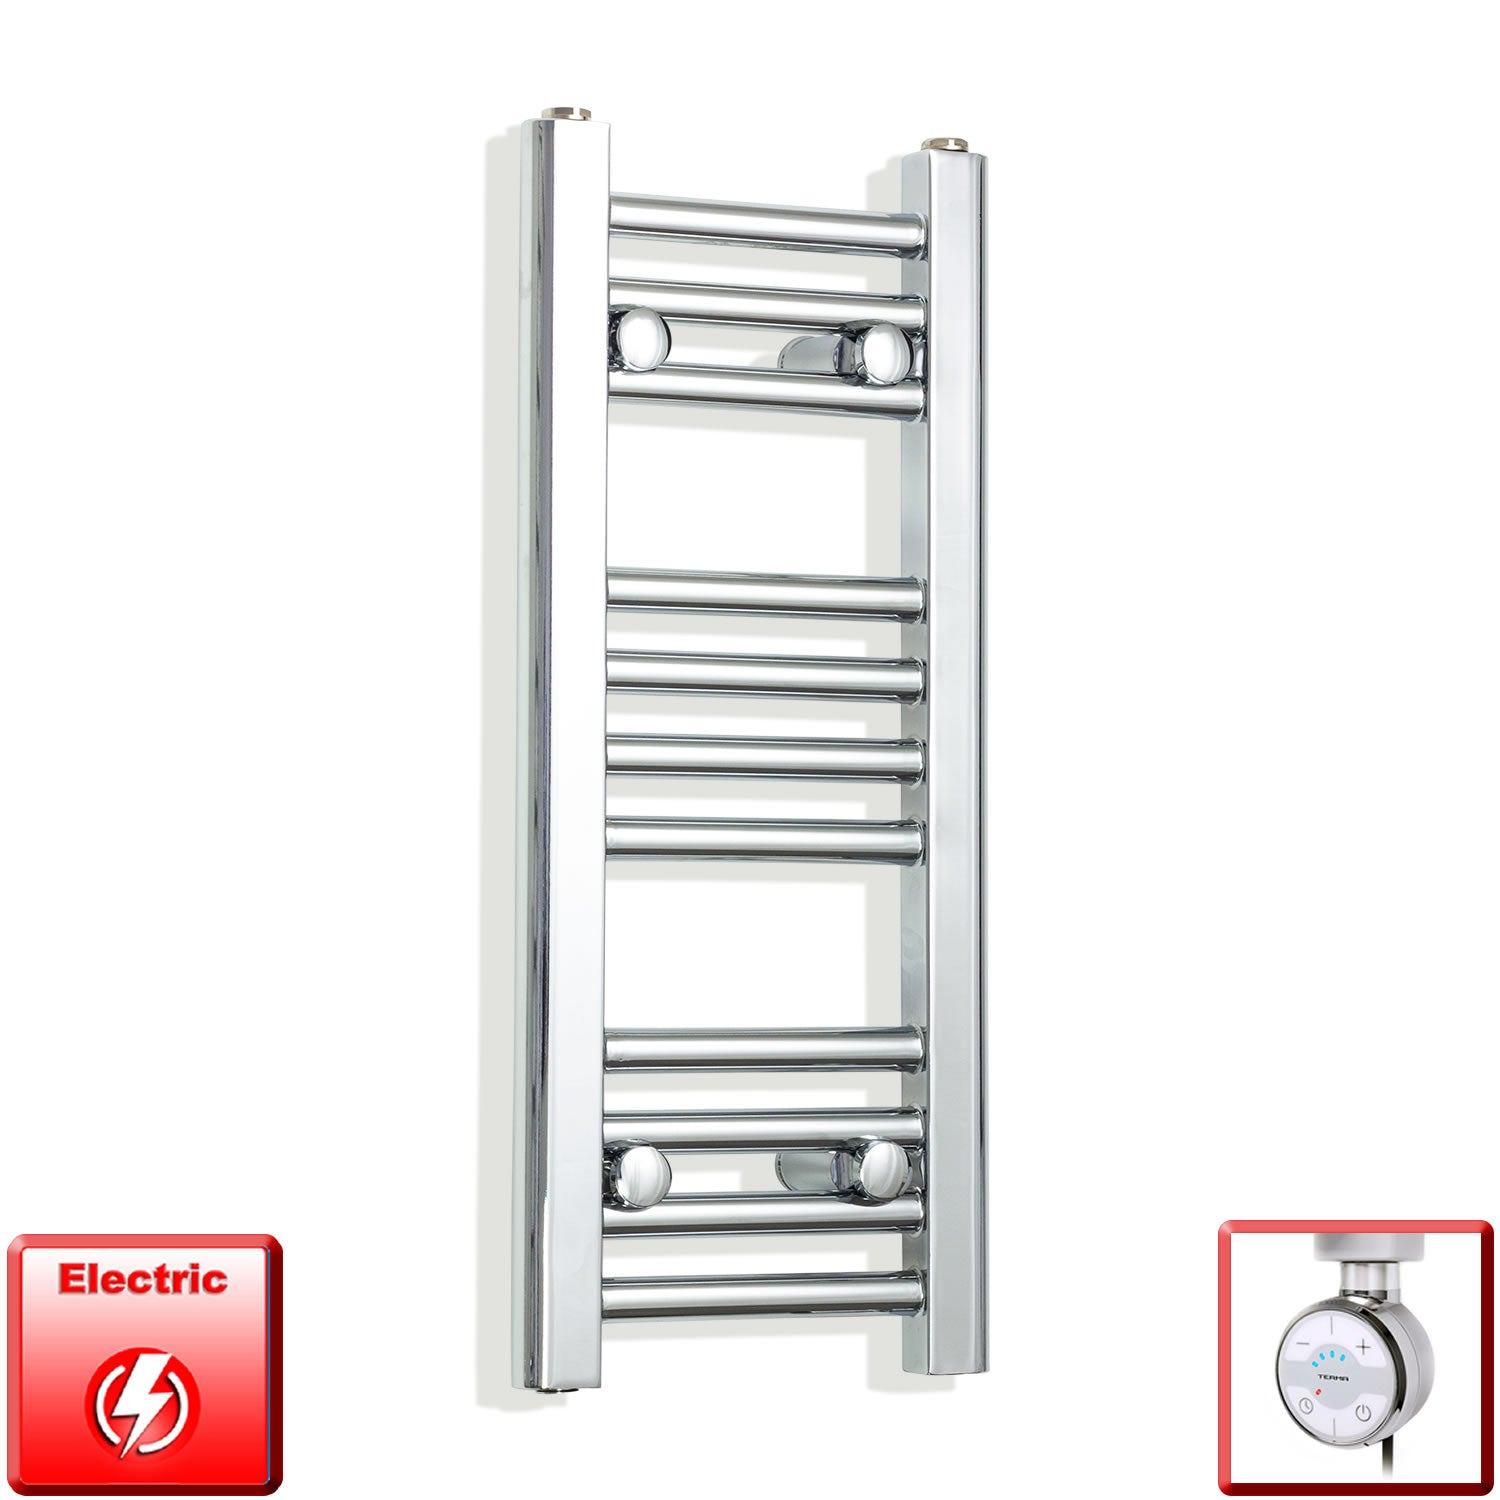 250mm Wide 600mm High Pre-Filled Chrome Electric Towel Rail Radiator With Thermostatic MOA Element